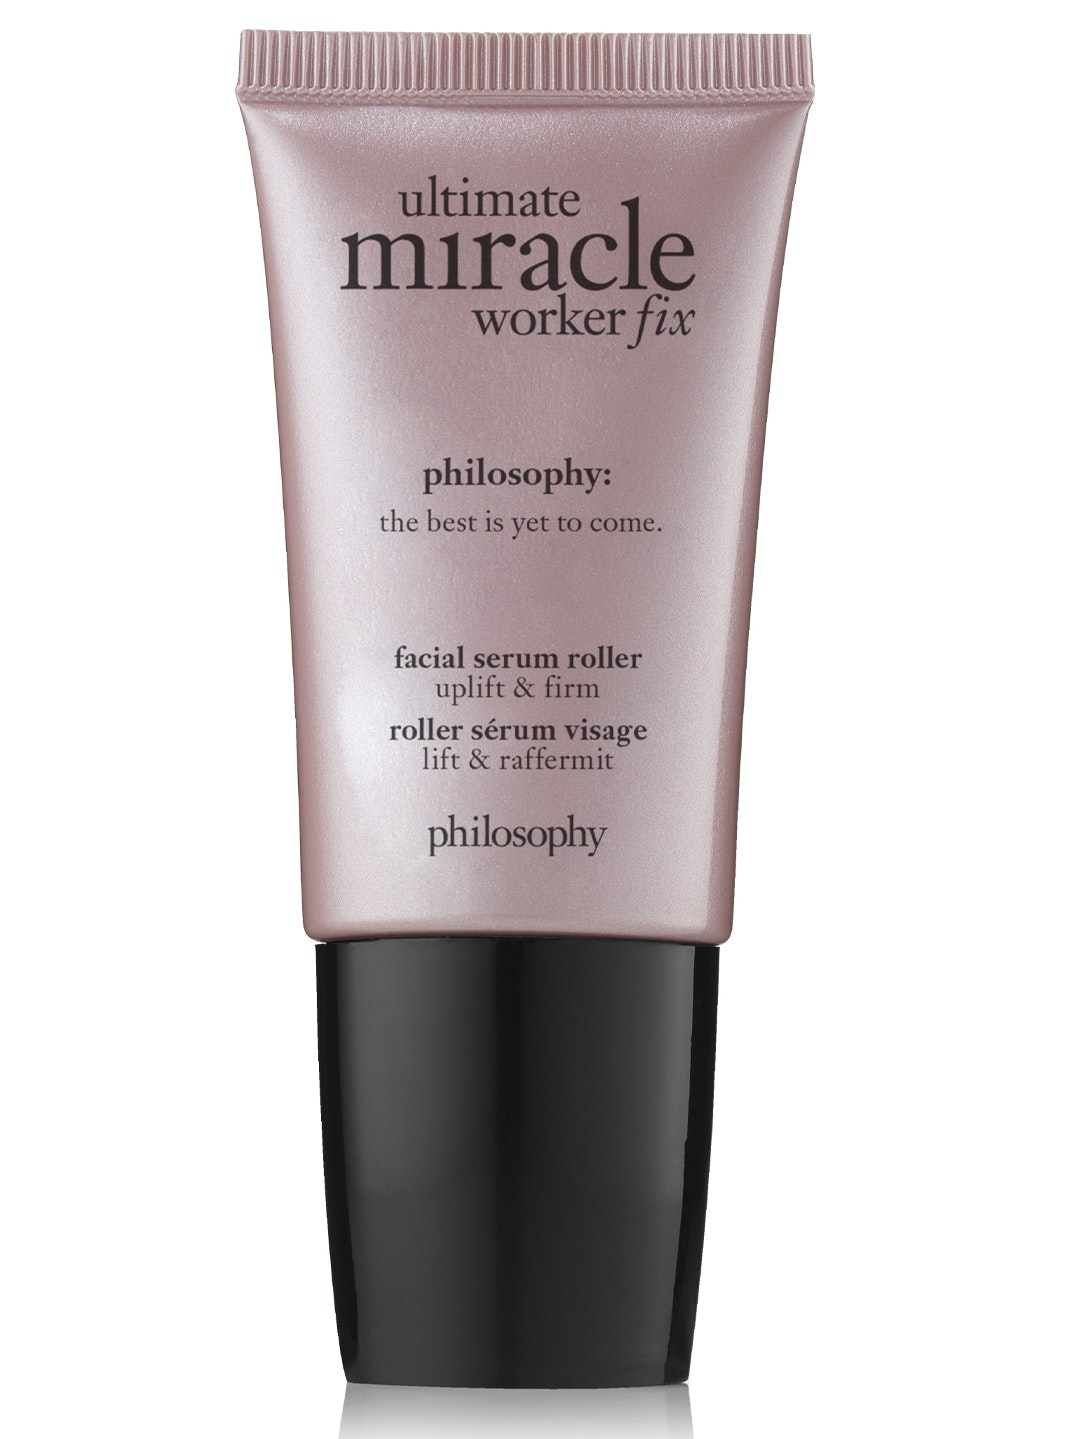 Philosophy Ultimate Miracle Worker Fix Facial Serum Roller: Uplift & Firm